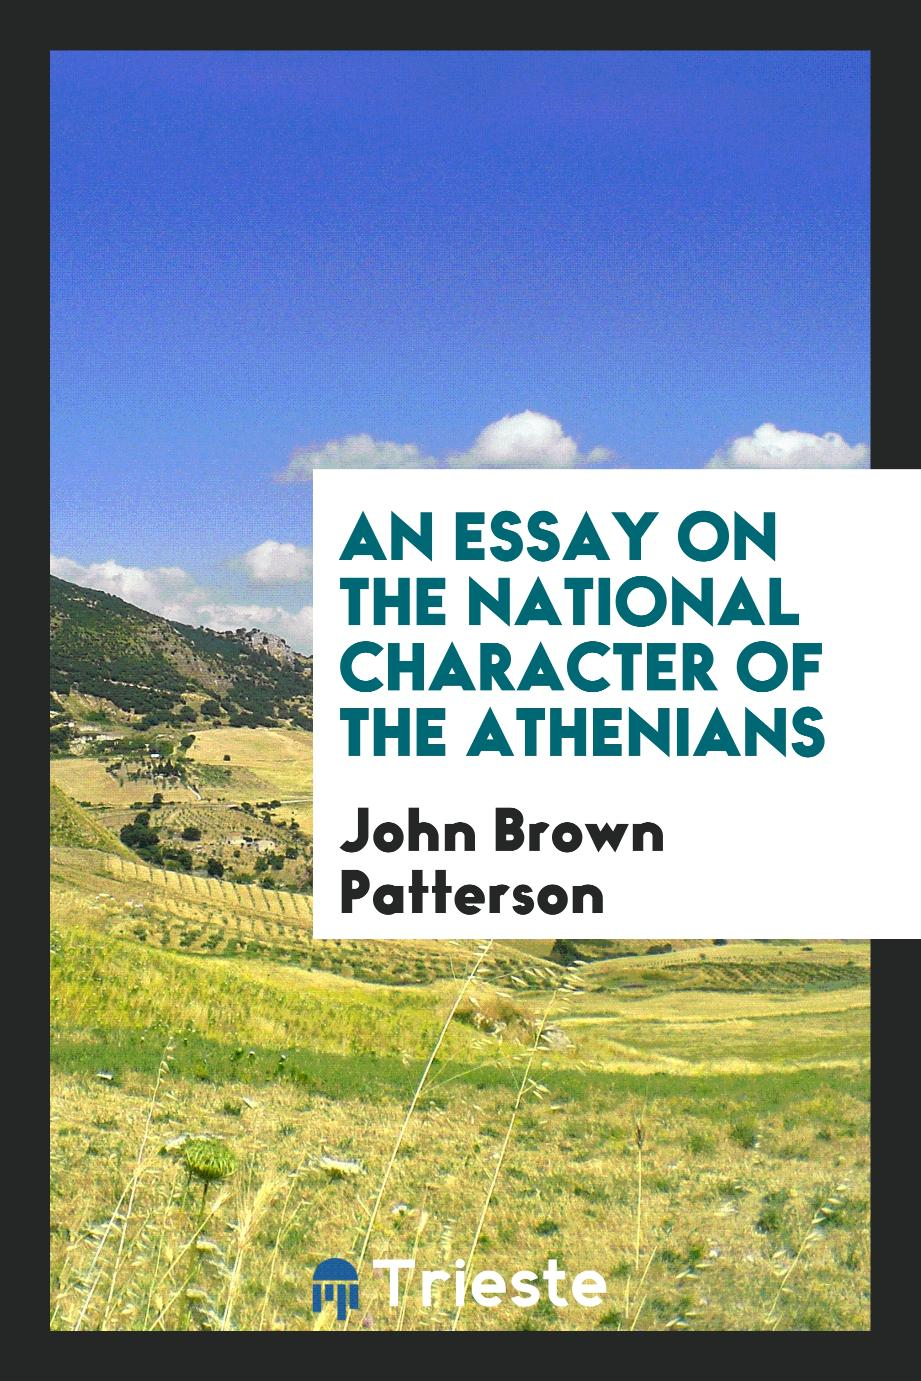 An Essay on the National Character of the Athenians